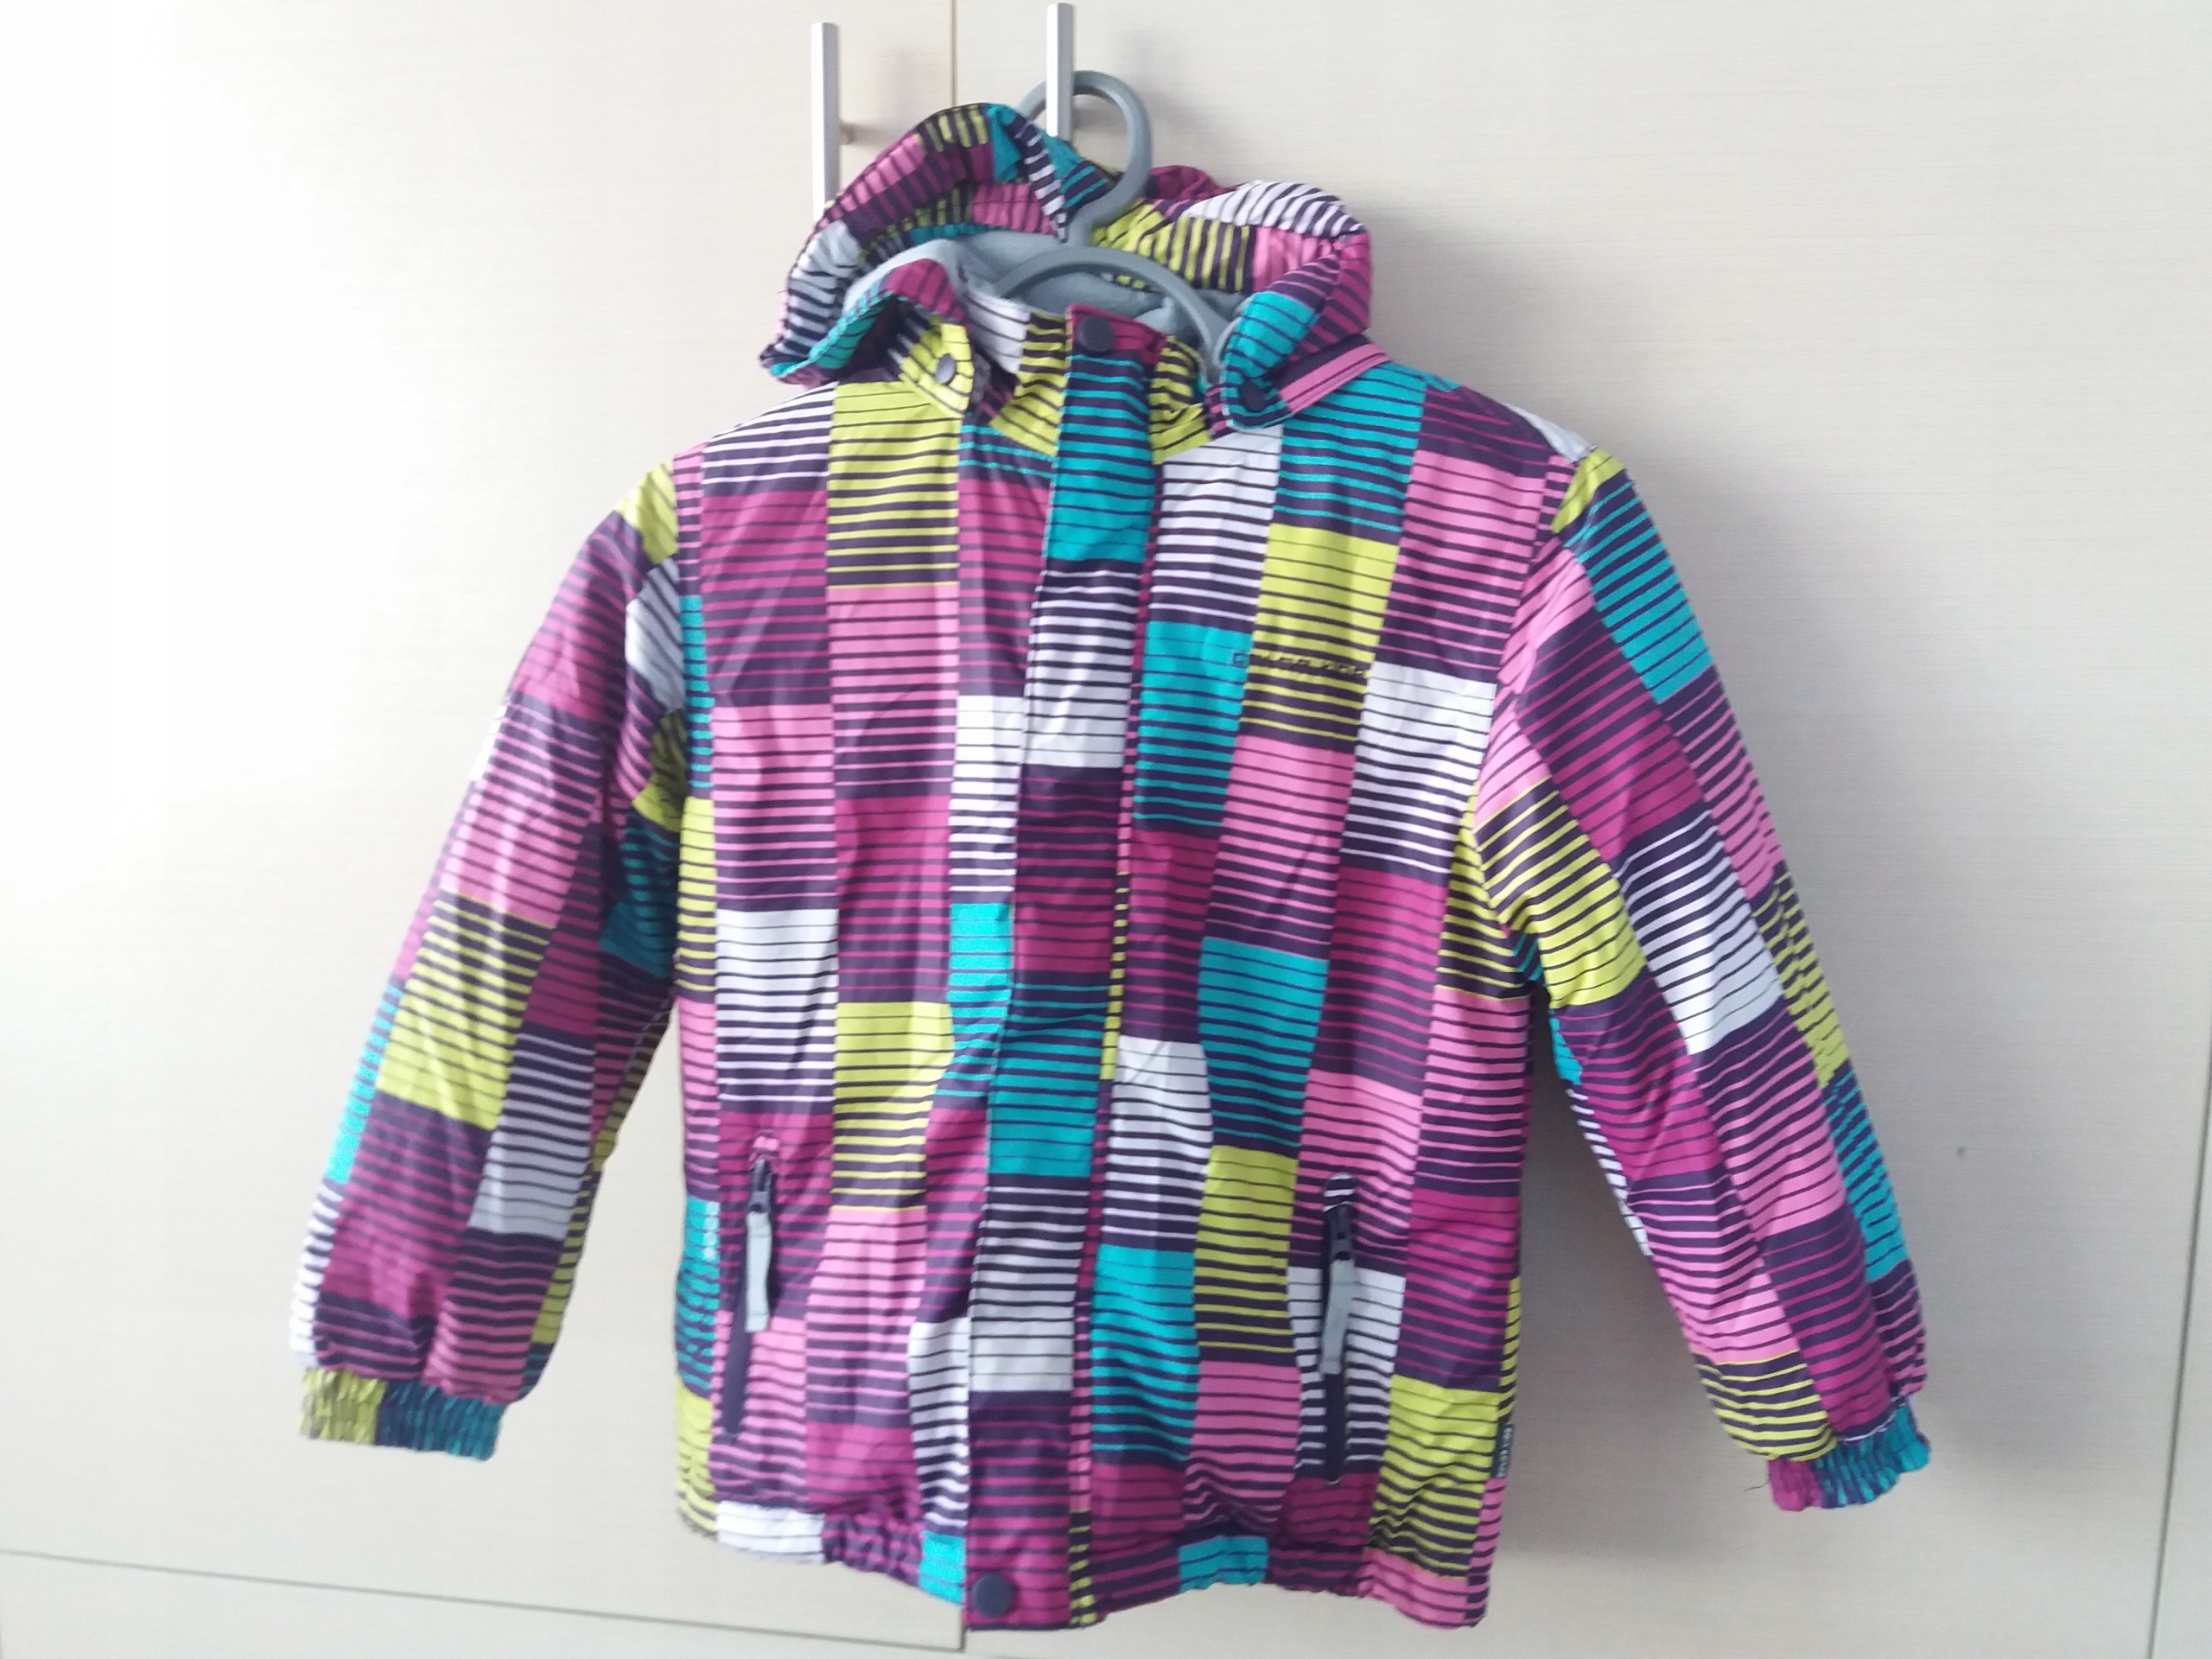 c42a701df44d Kurtka narciarska color kids 116-122 Intersport - 7684064855 ...